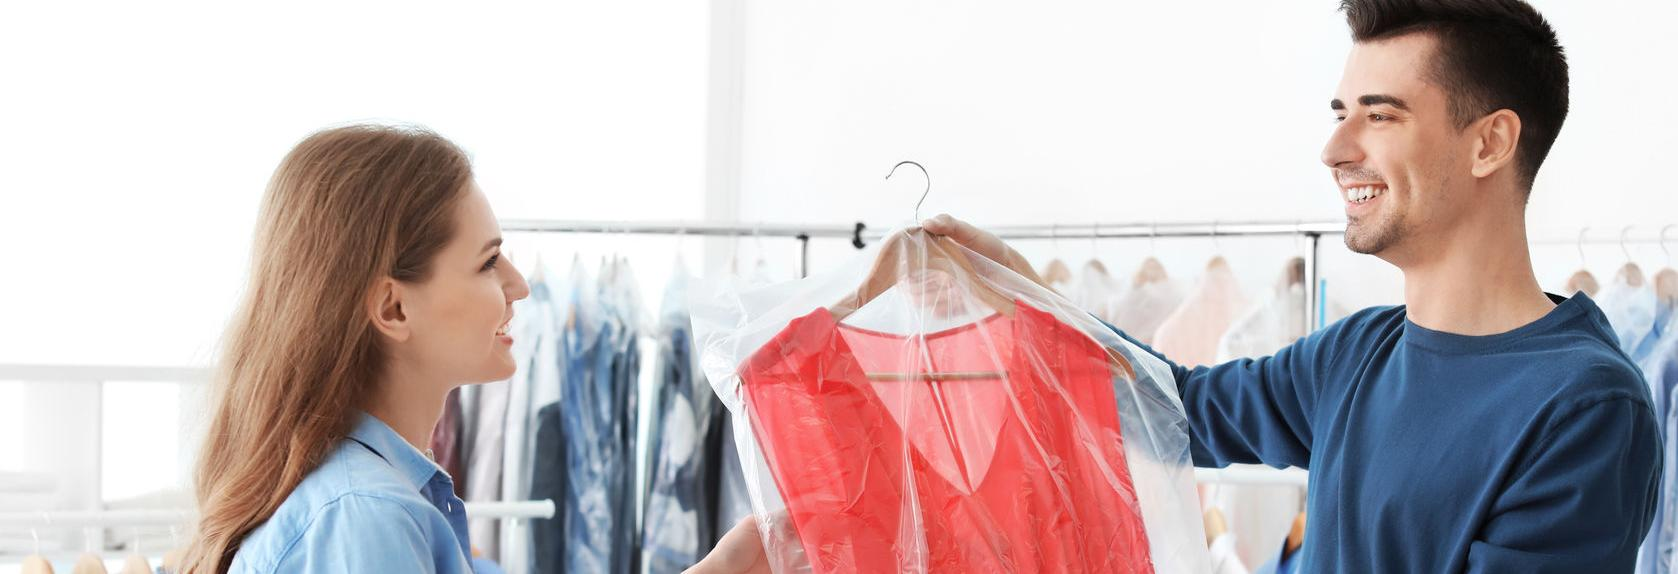 Newport ridge cleaners Newport beach ca dry cleaning coupons near me